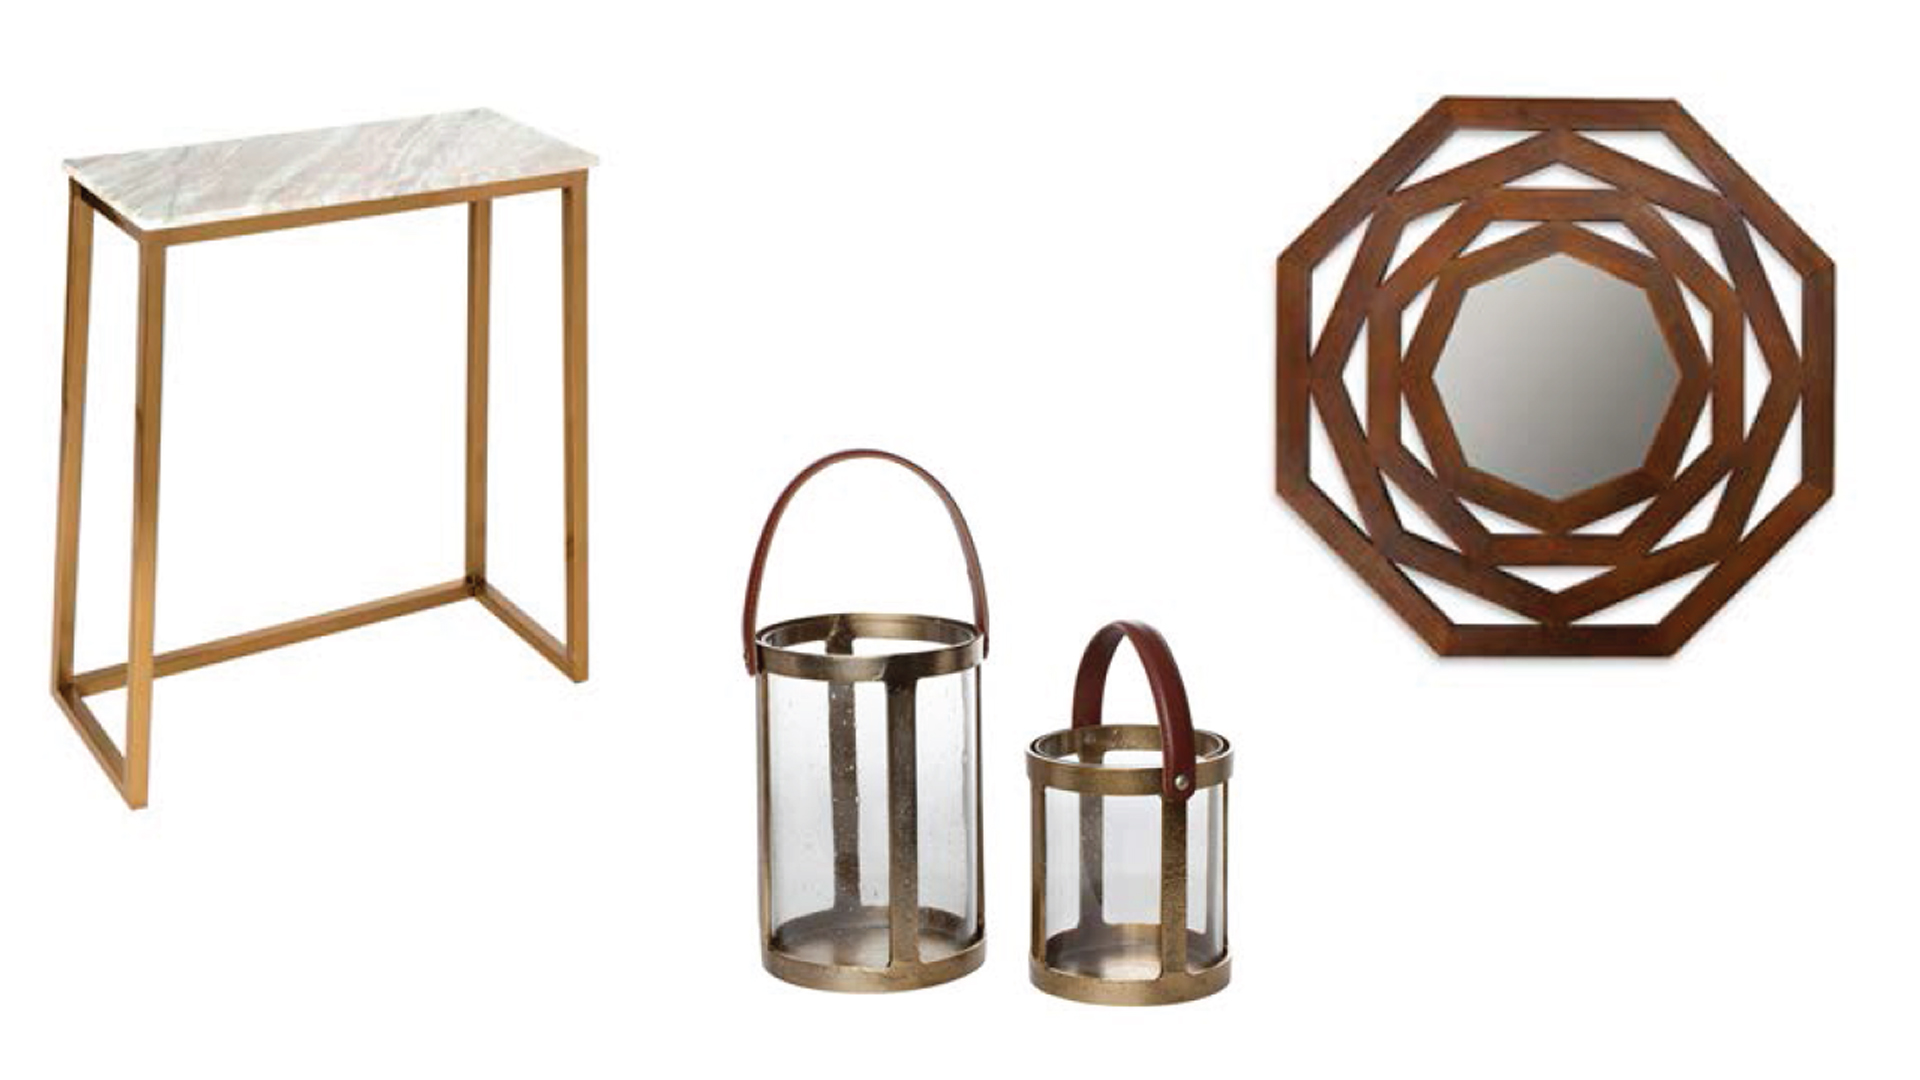 Target unveils new home decor items for every style personality